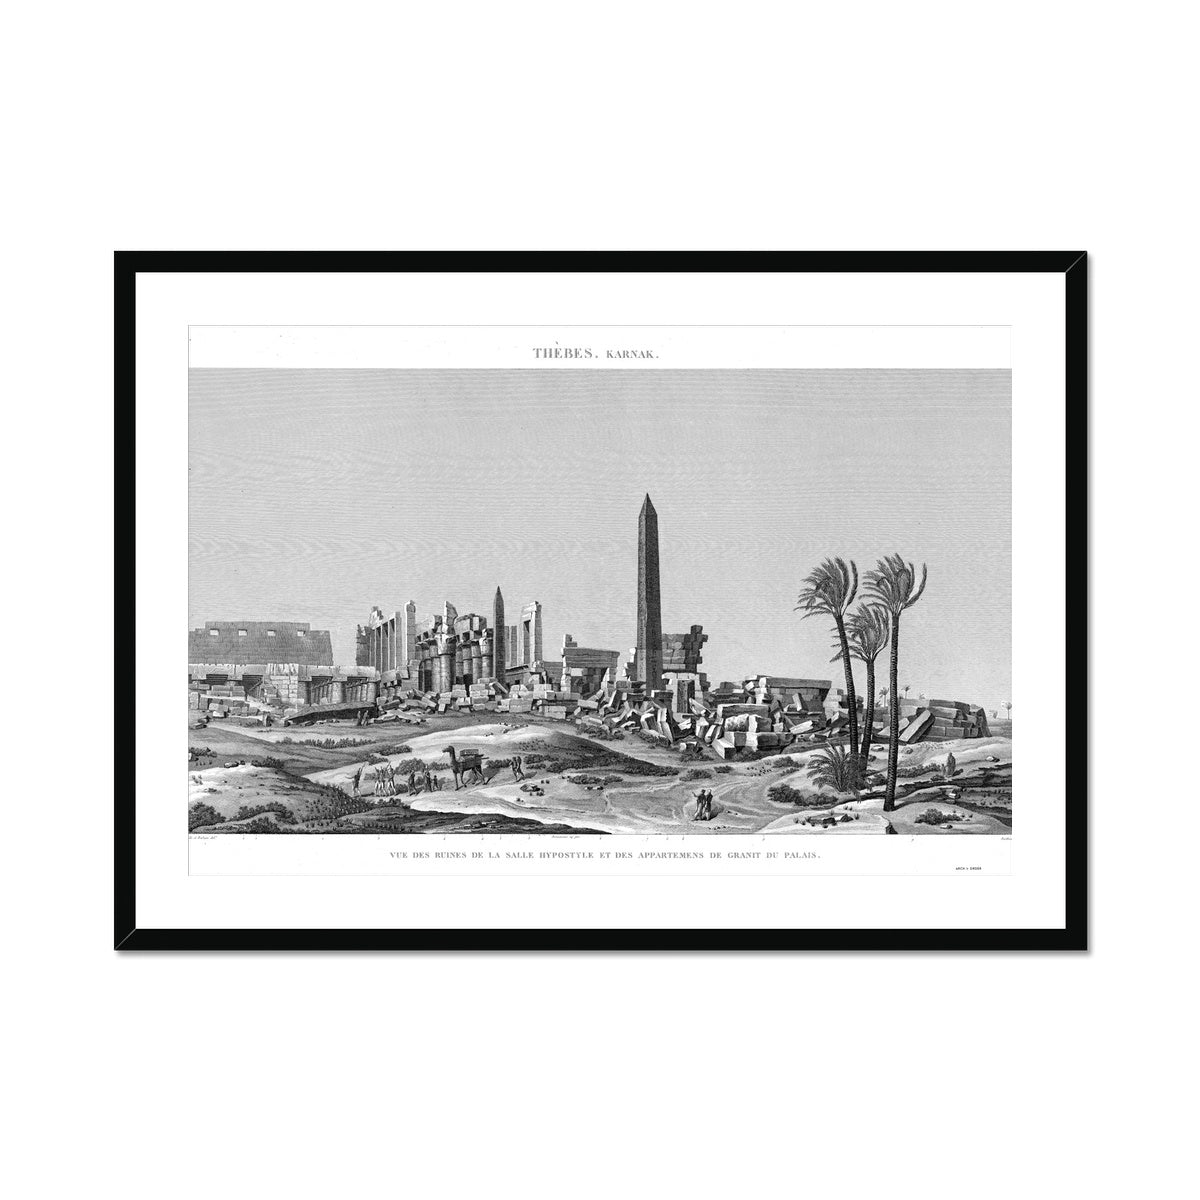 Ruins of the Hypostyle Hall - Karnak - Thebes Egypt -  Framed & Mounted Print